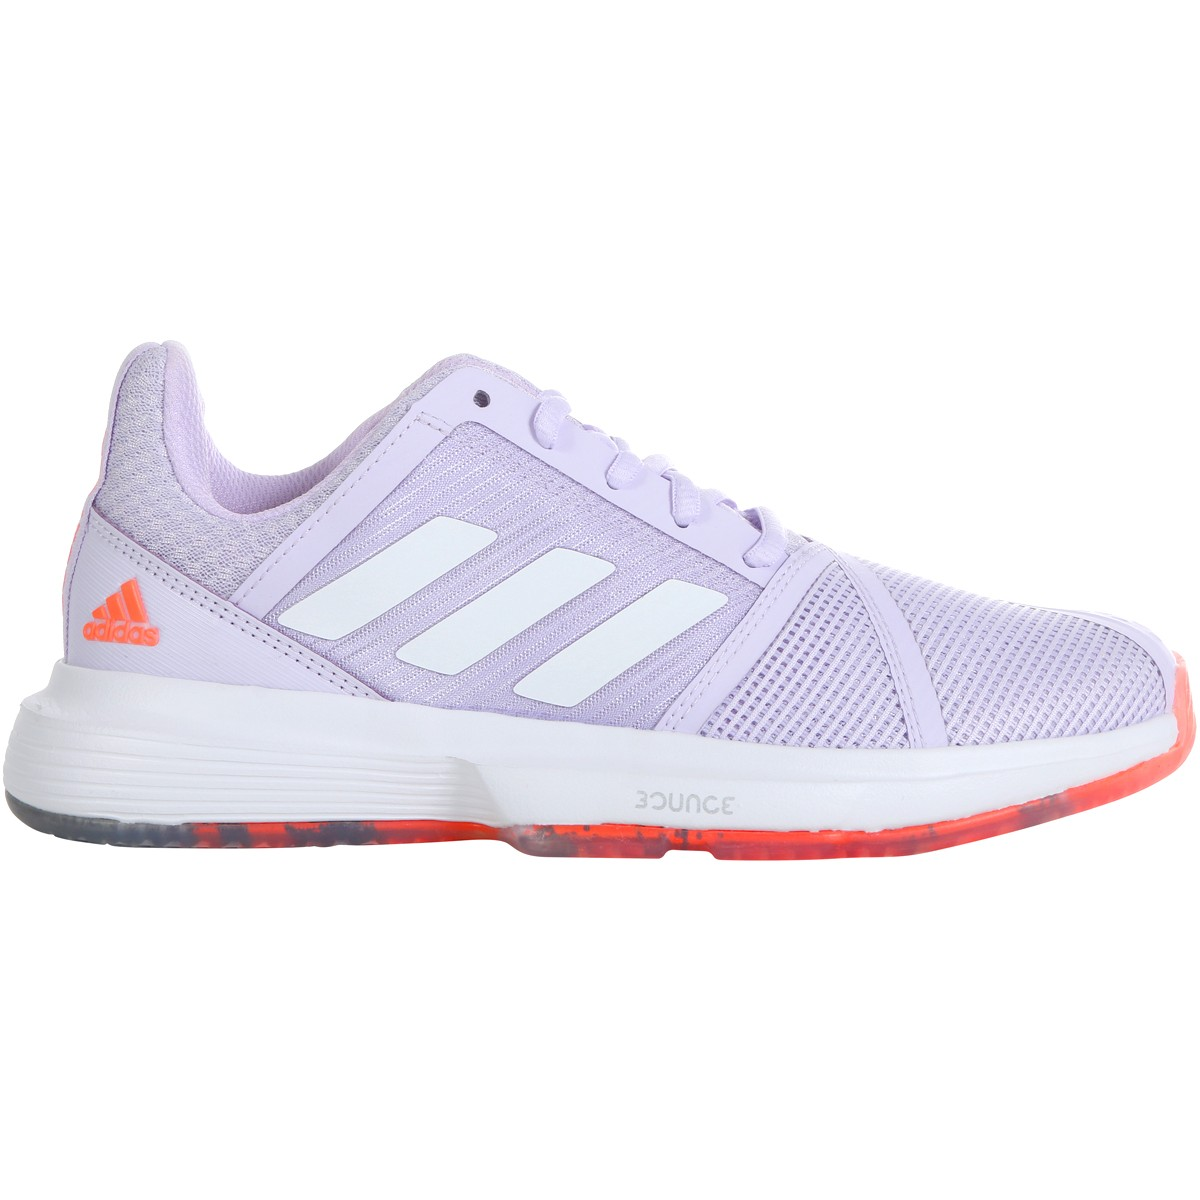 WOMEN'S ADIDAS COURTJAM BOUNCE ALL COURT SHOES